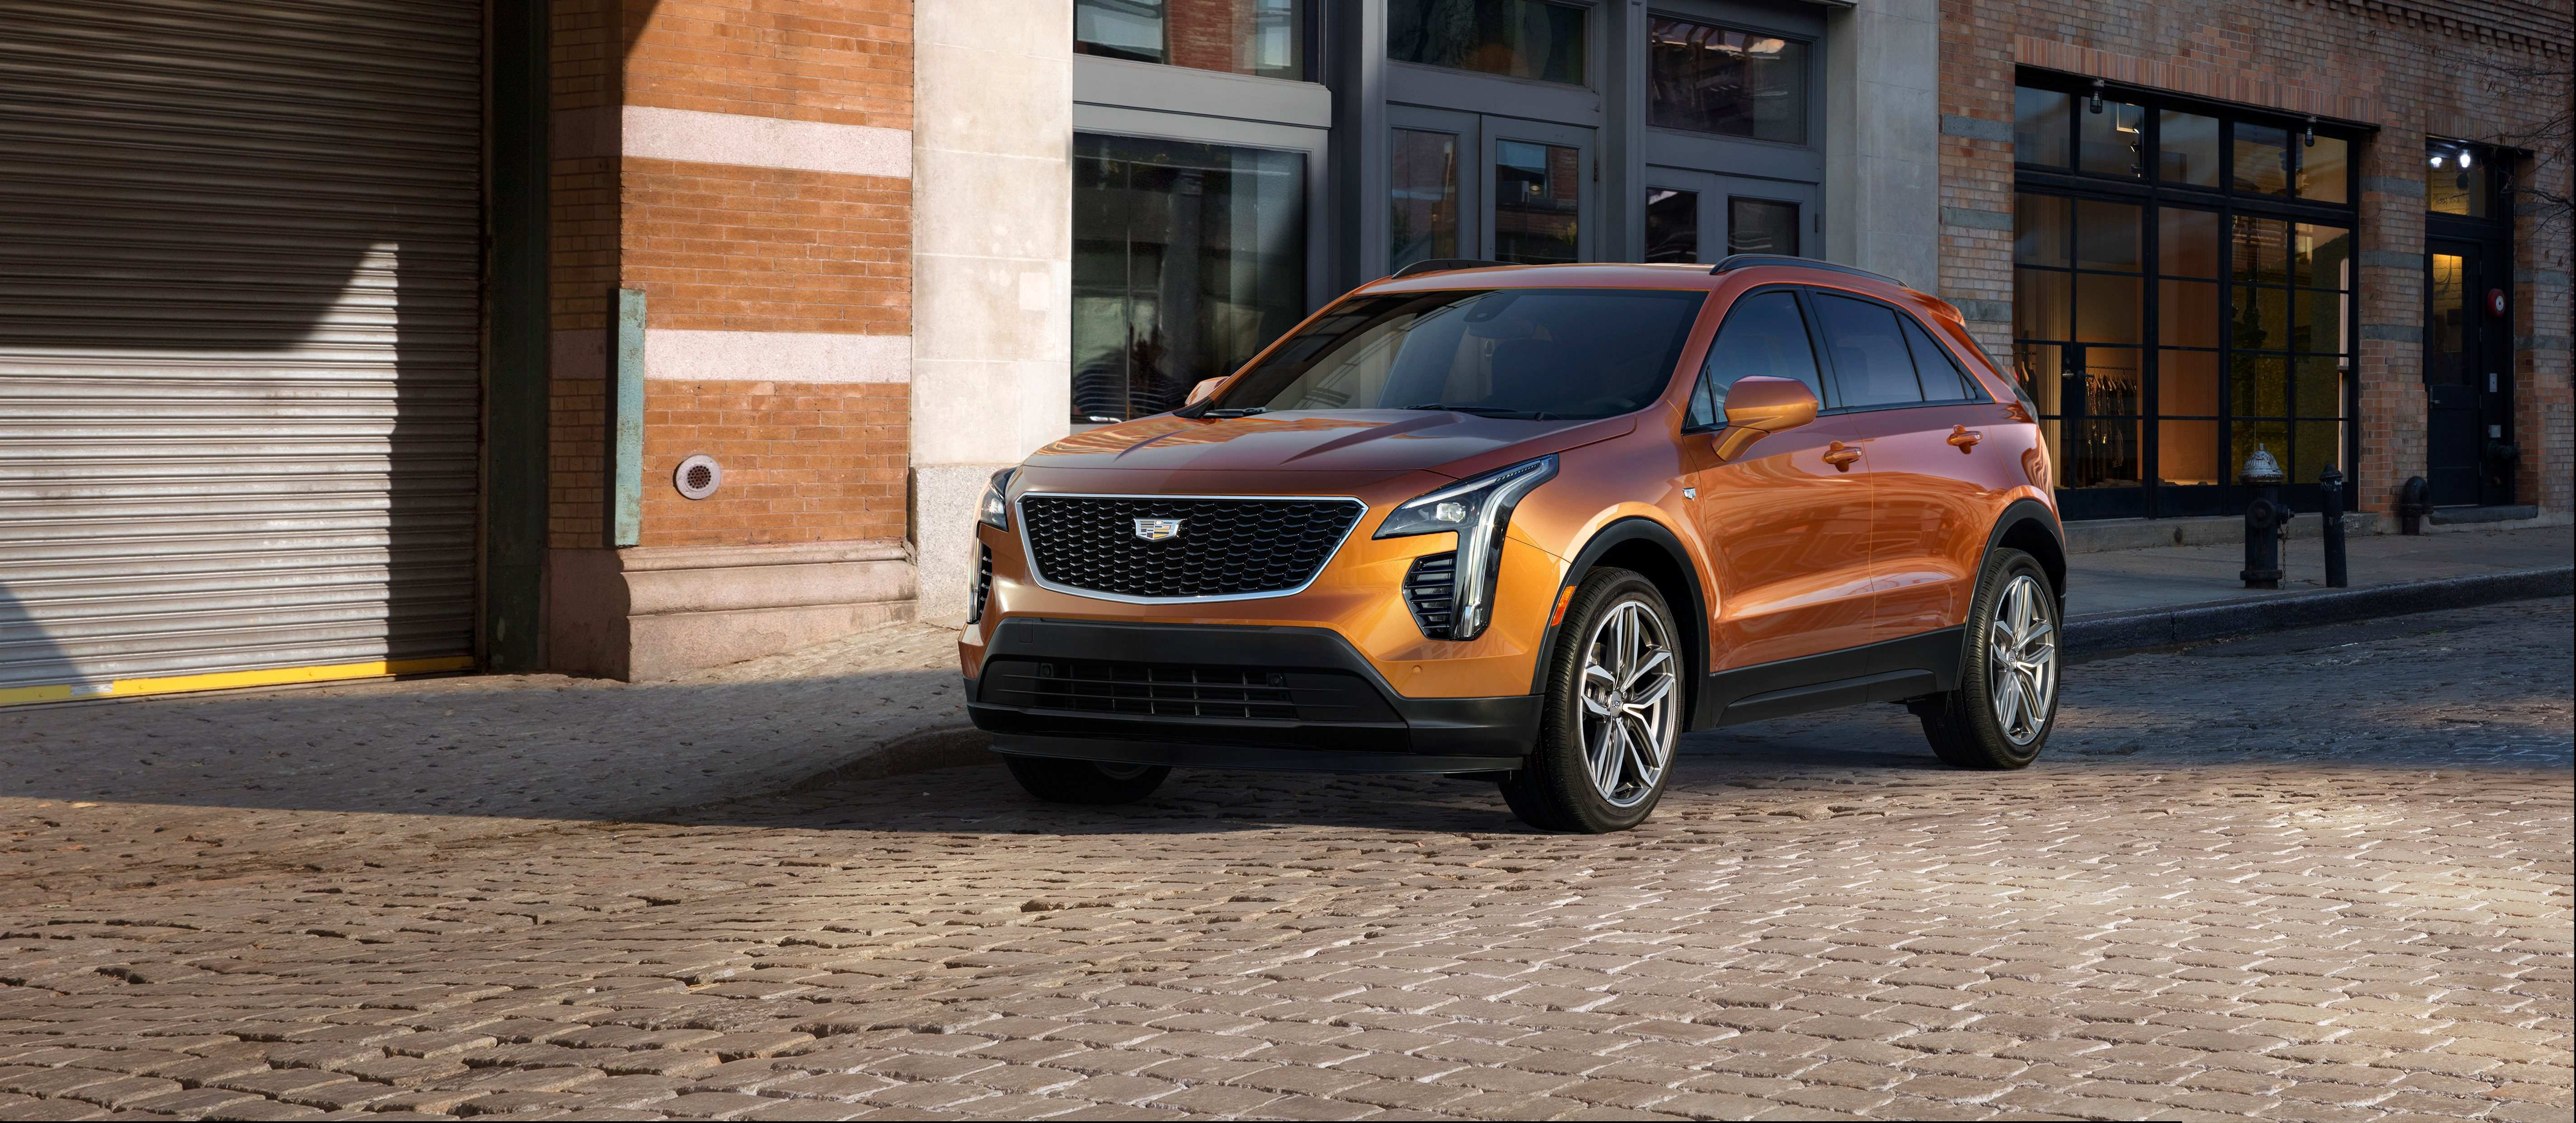 95 Concept of New Cadillac 2019 Xt4 Price Price for New Cadillac 2019 Xt4 Price